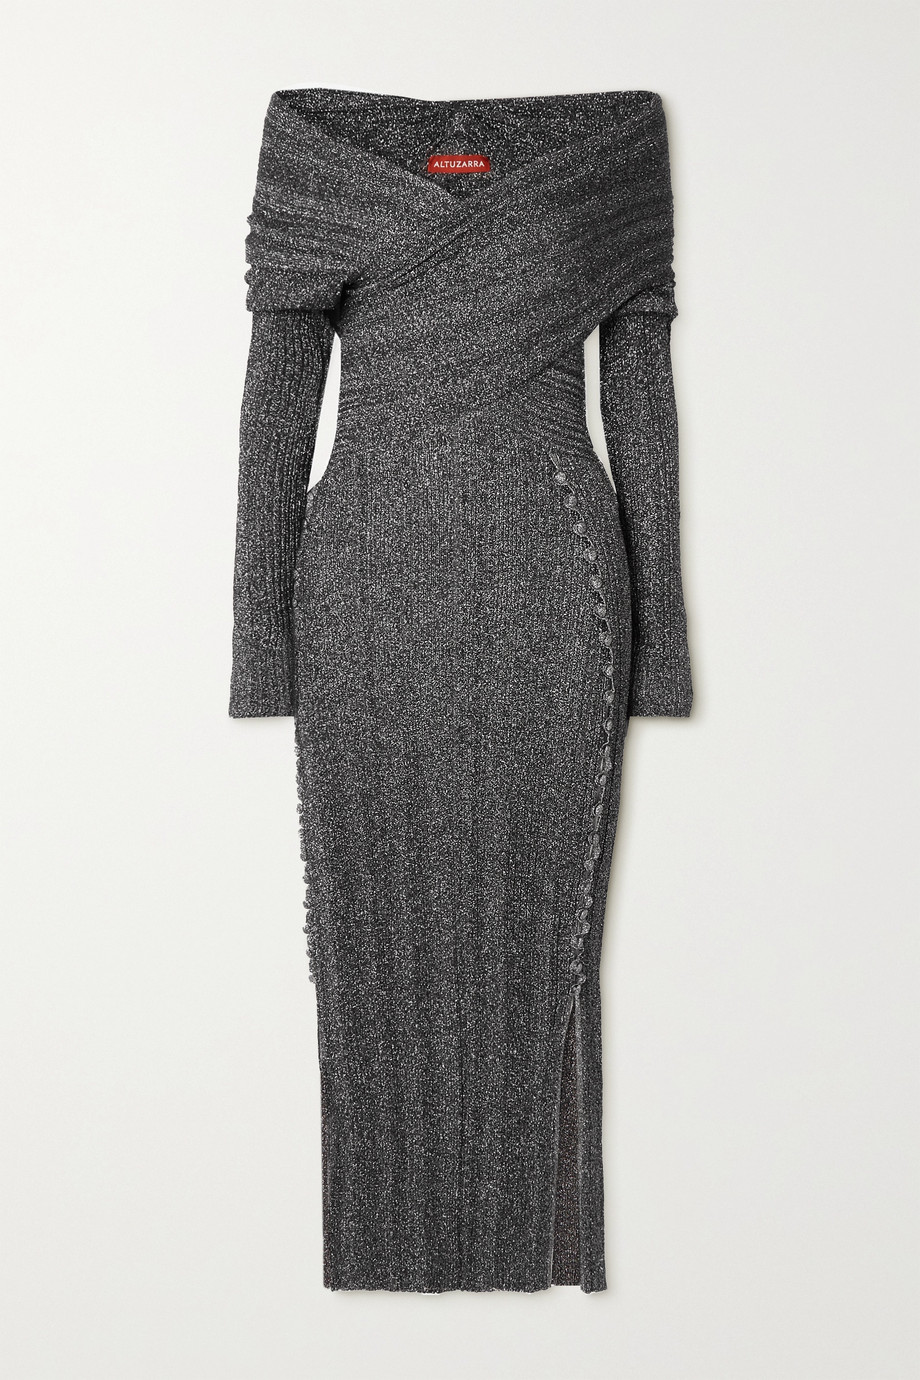 Altuzarra Mattie off-the-shoulder metallic stretch-knit midi dress